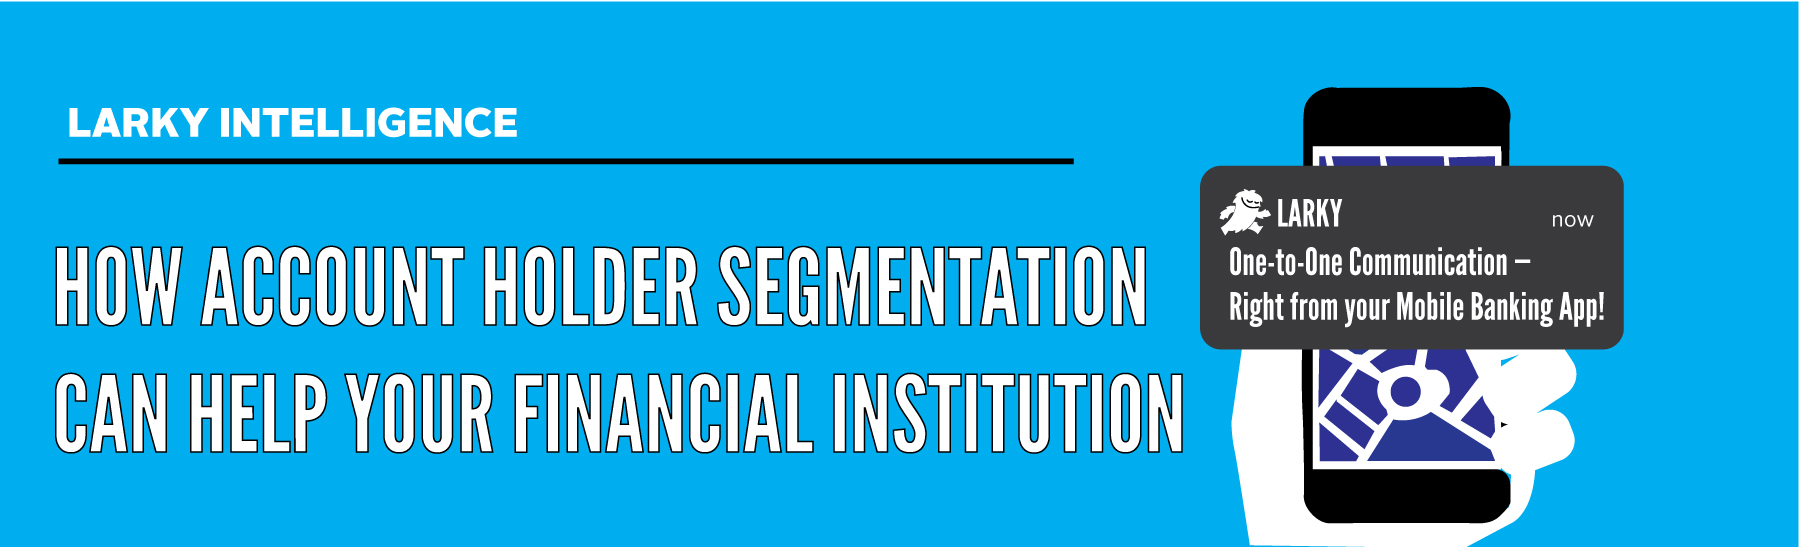 How account holder segmentation can help your financial institution